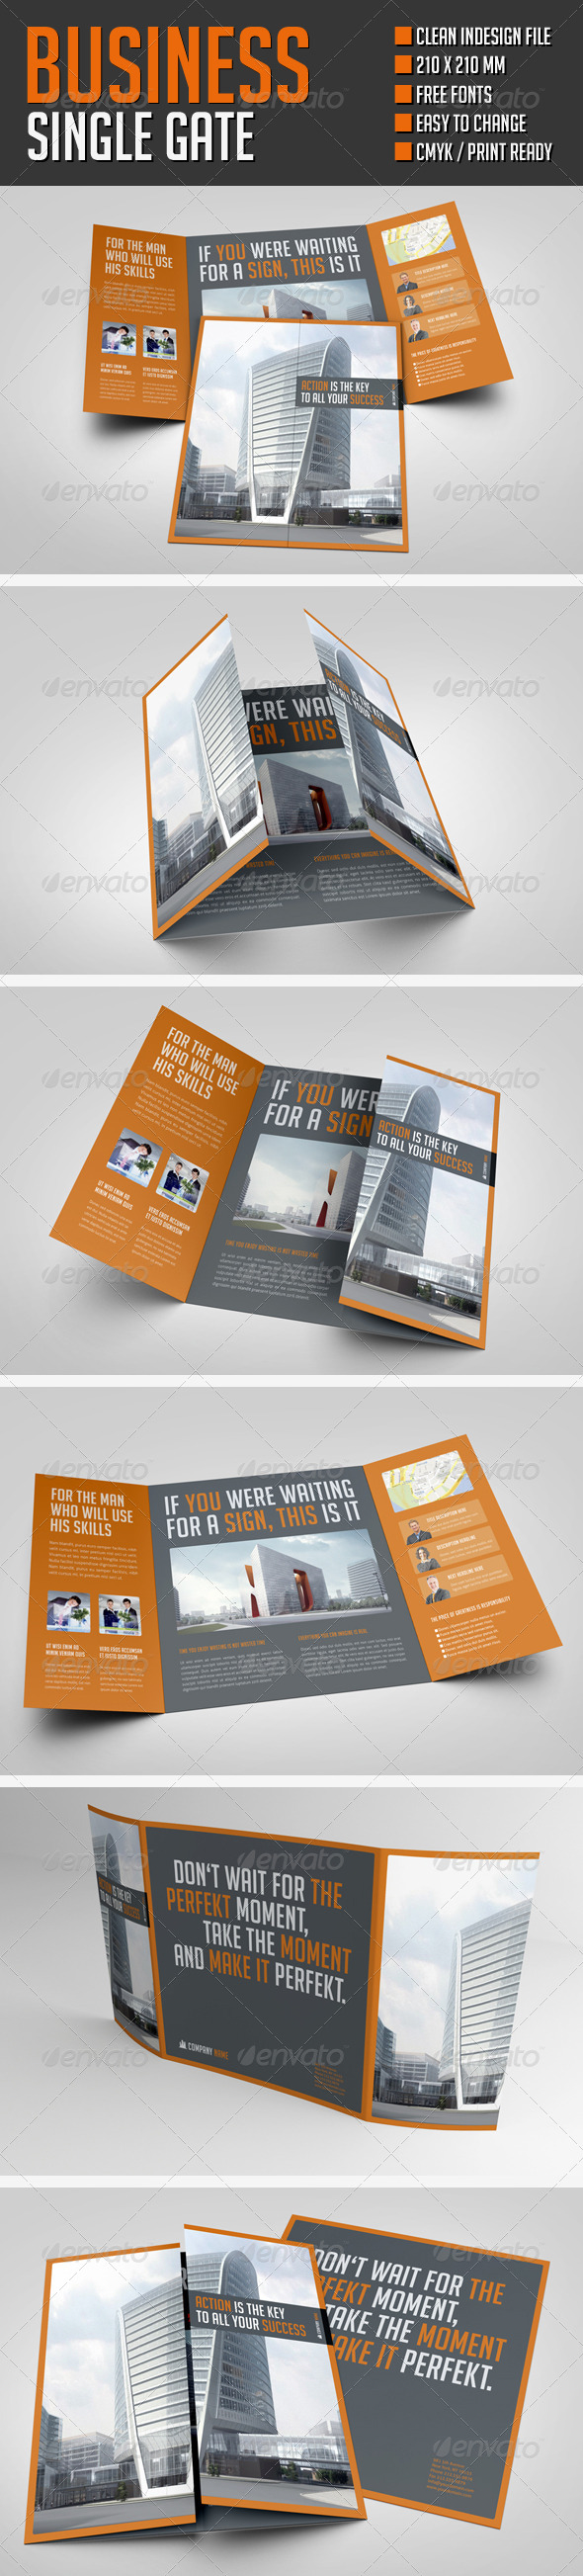 GraphicRiver Business single gate flyer 8566751